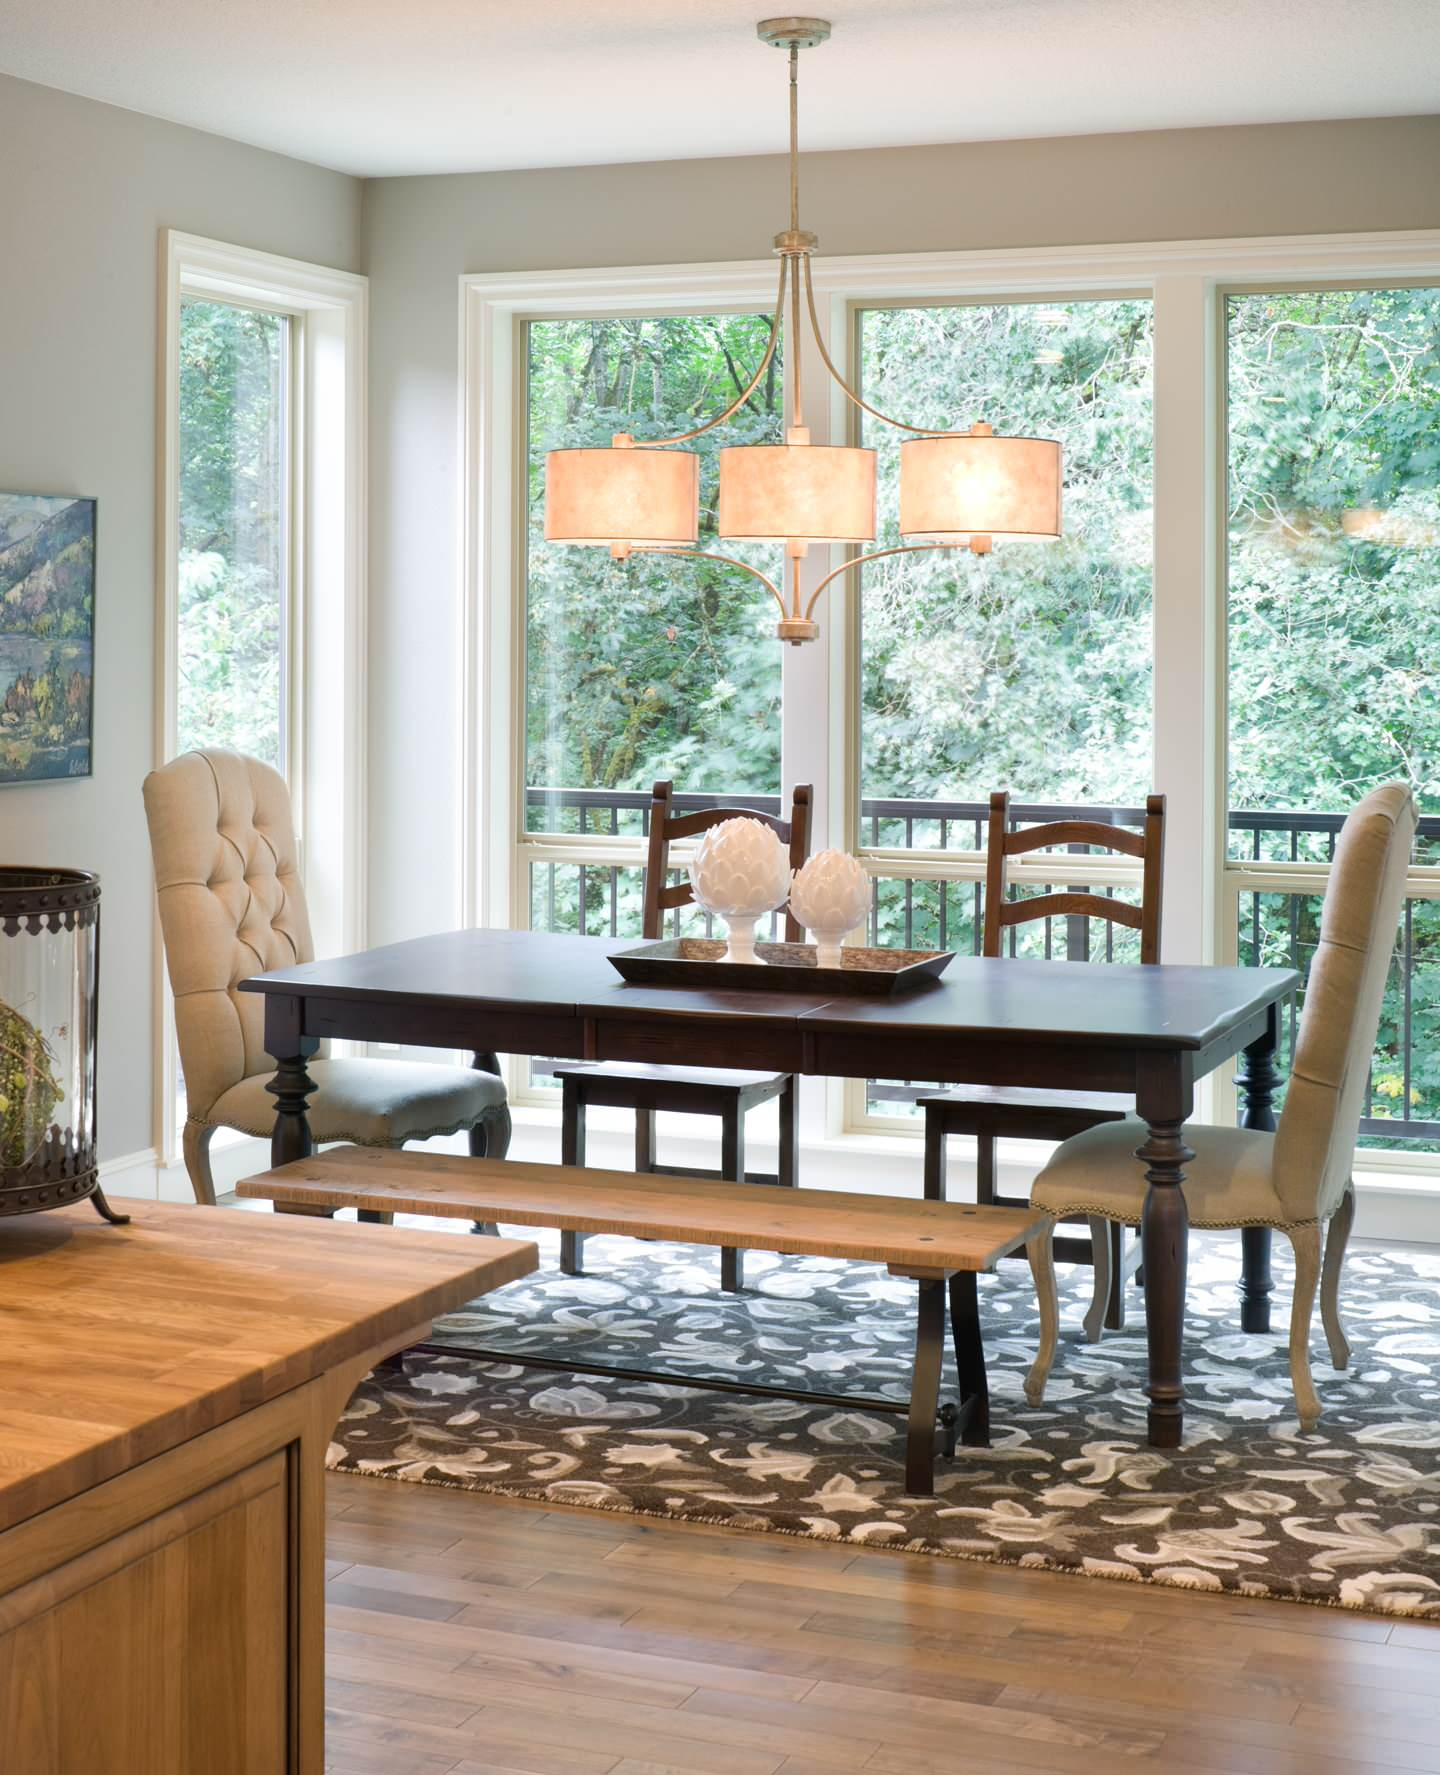 Choosing The Perfect Drum Chandelier For Dining Room Transitional With Patterned Rug Plus